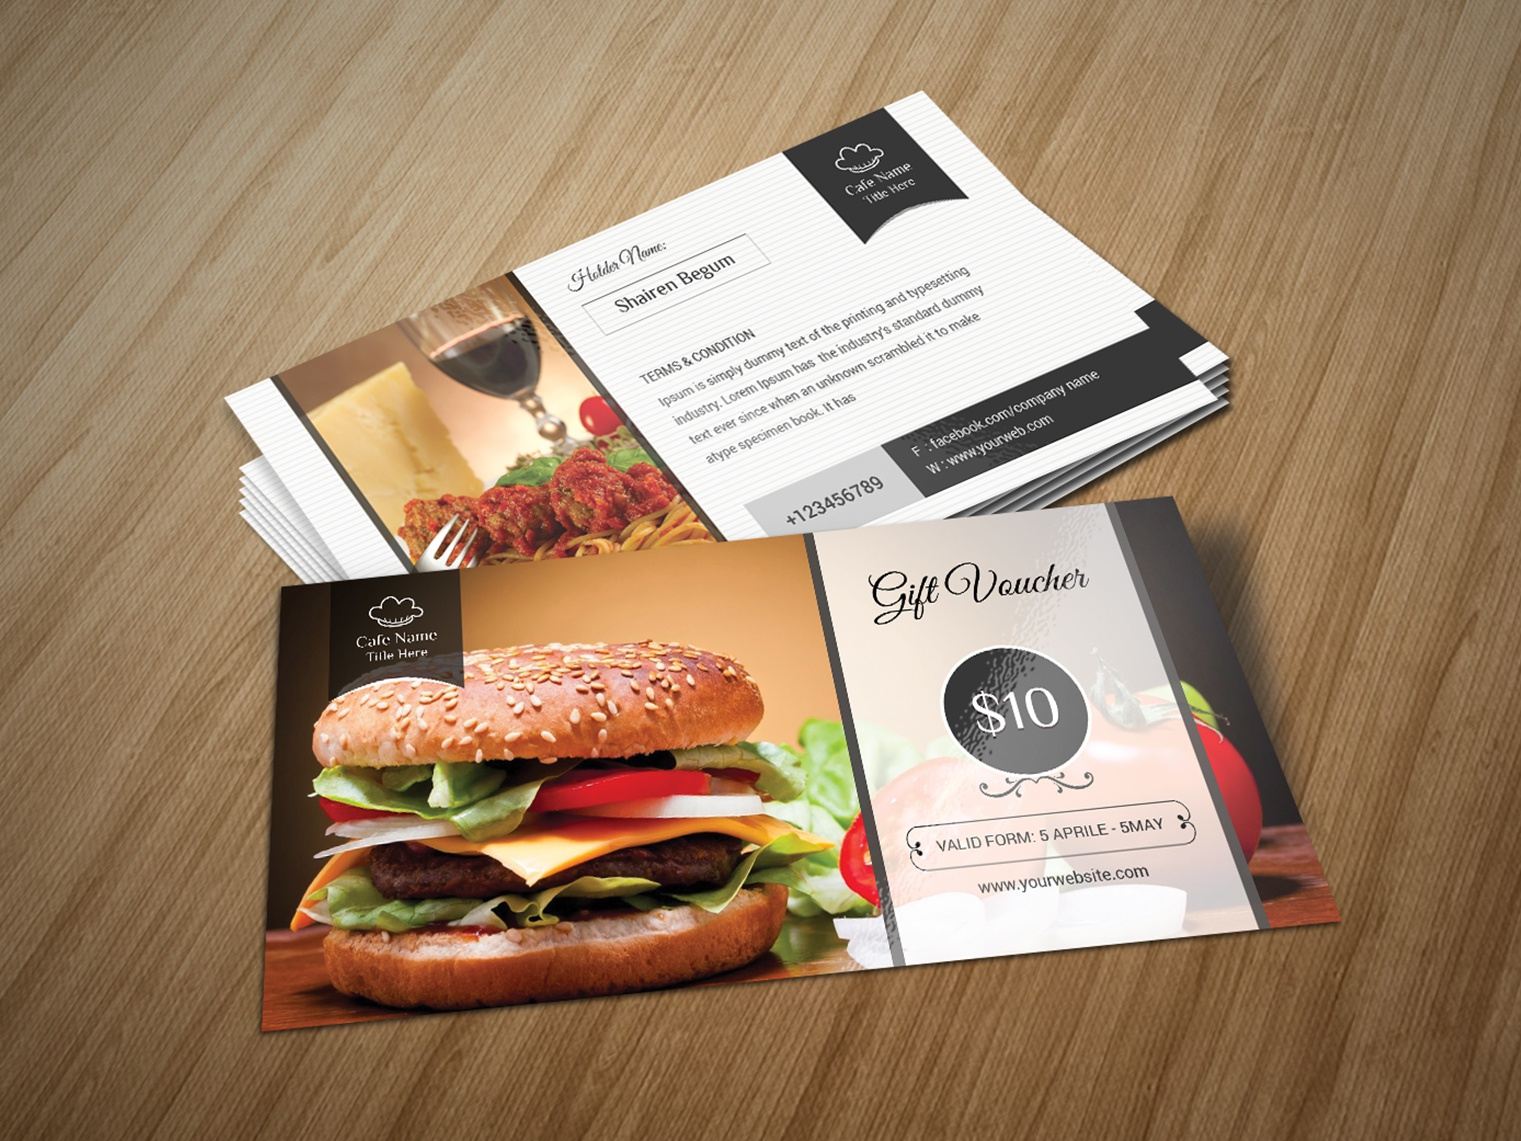 Food Gift Voucher by designsbird on Dribbble